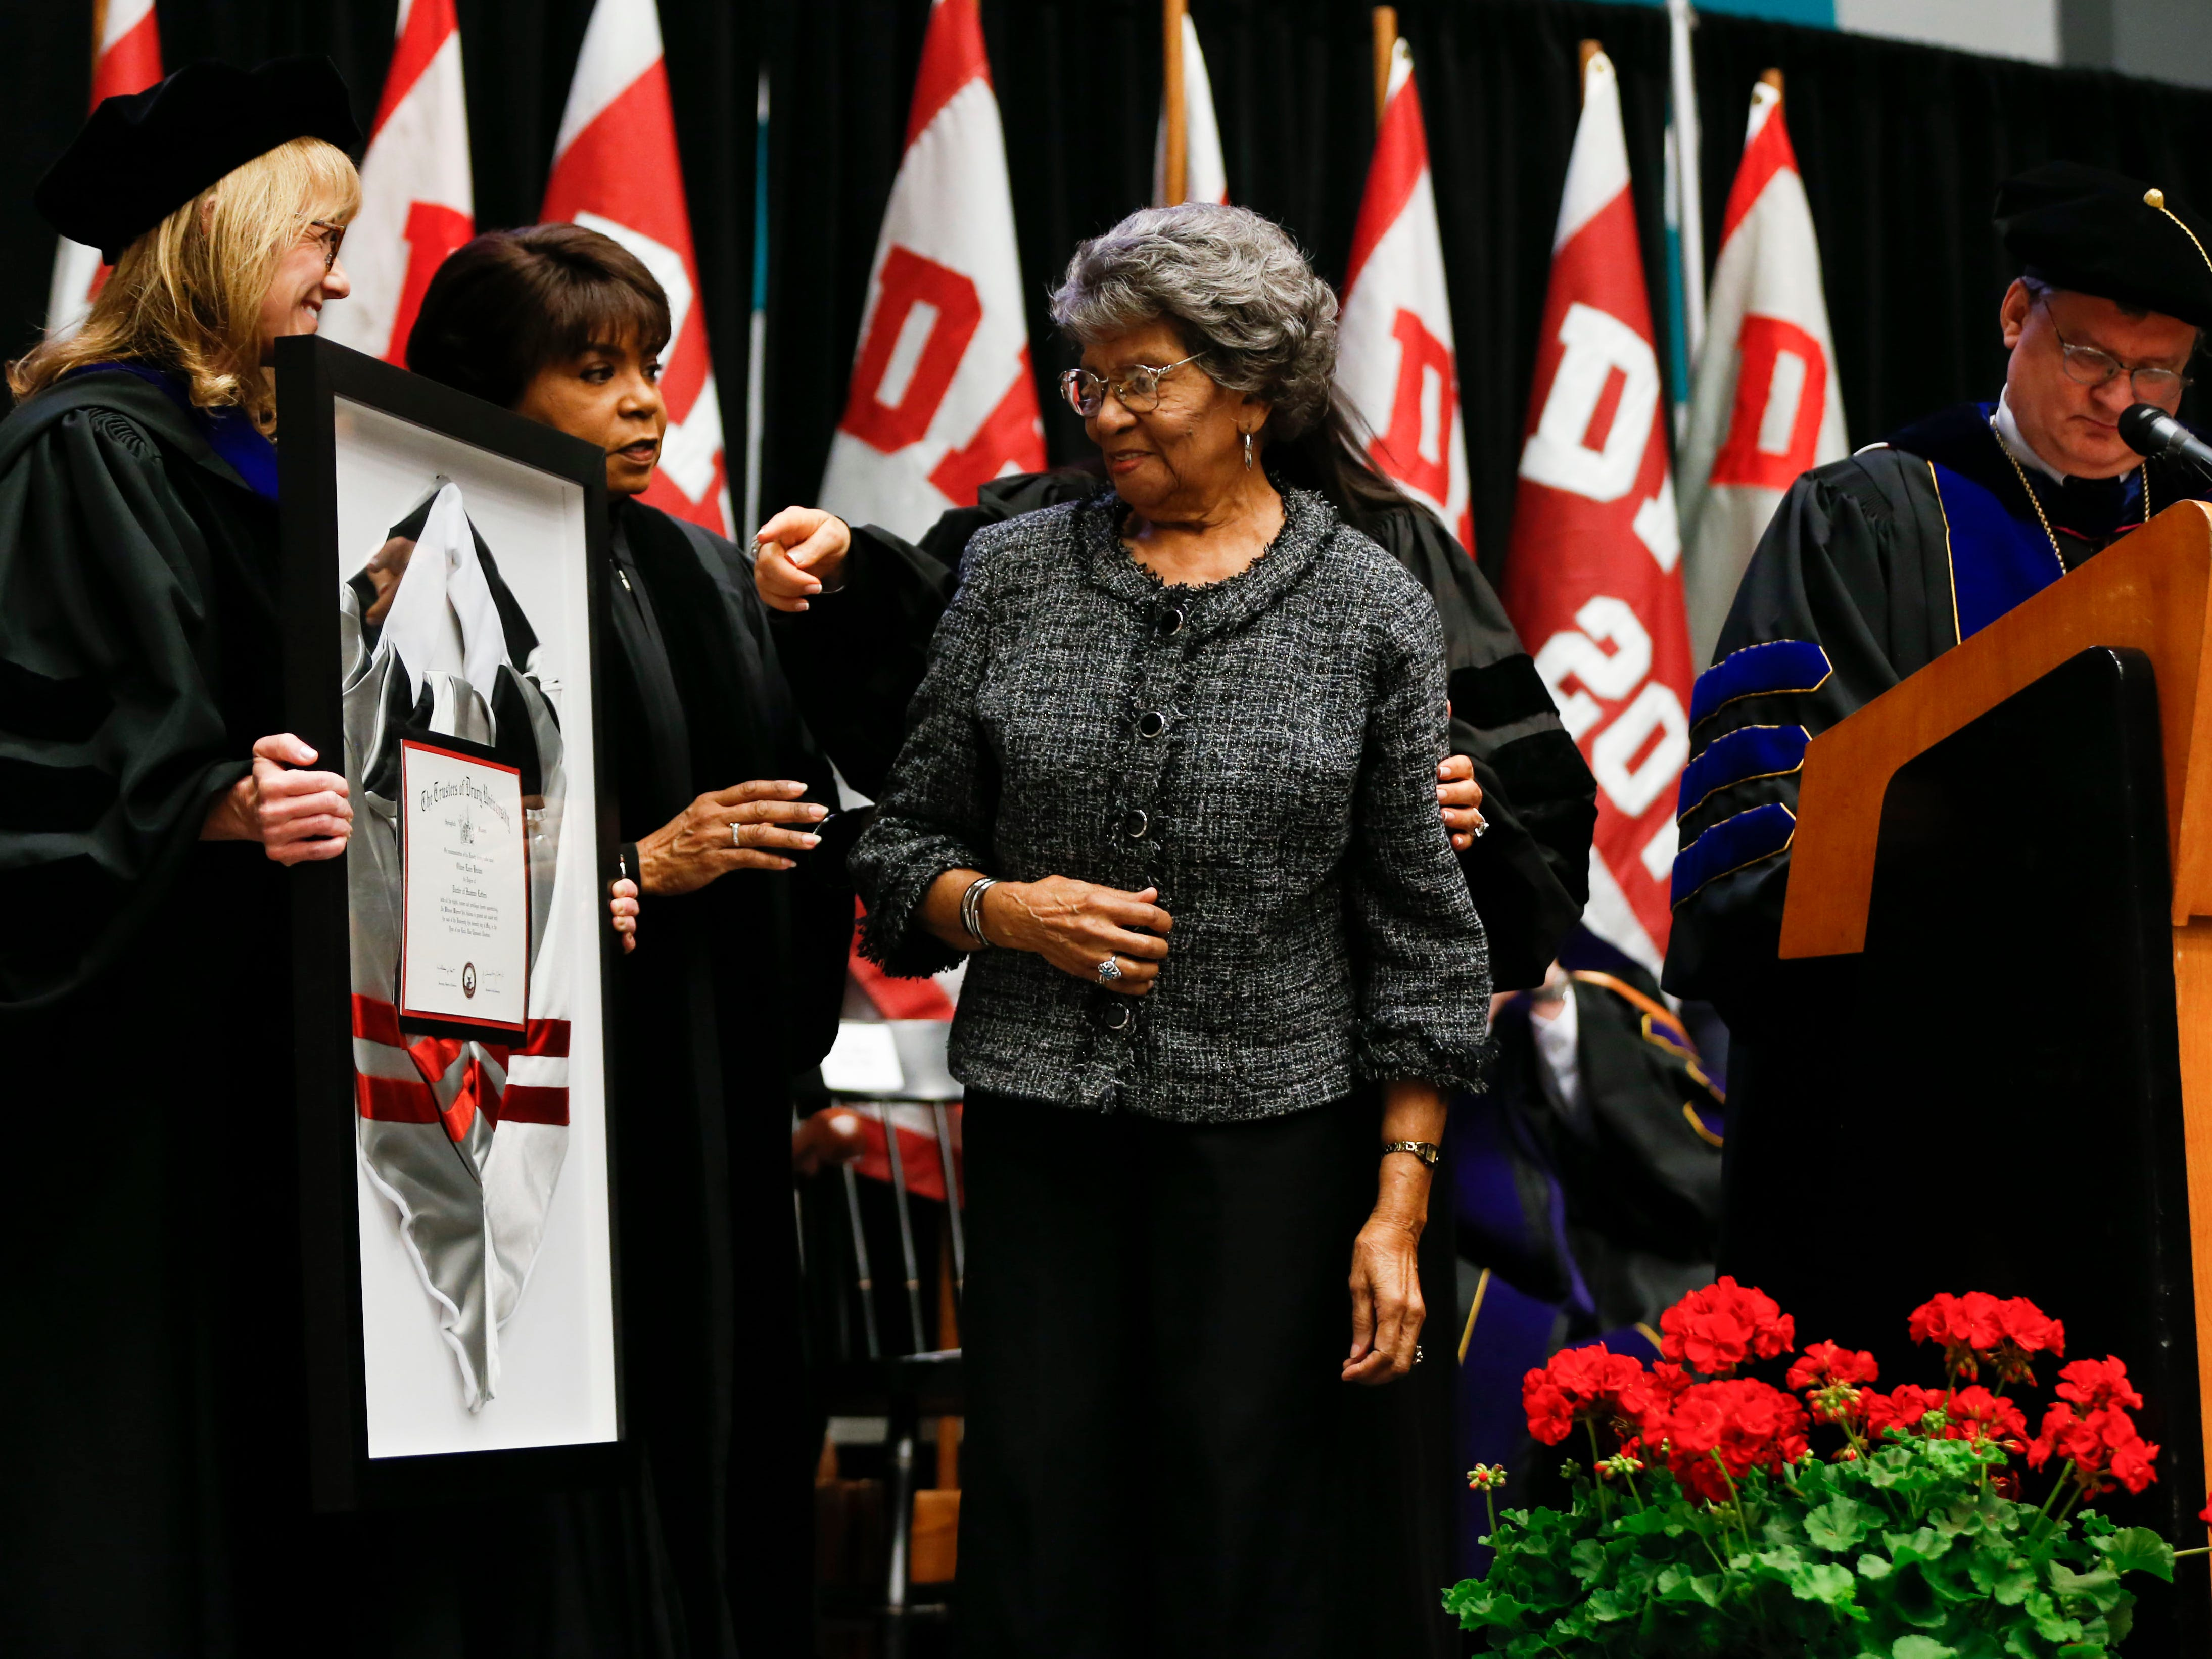 Leola Montgomery Brown accepts a honorary degree on behalf of her late husband Oliver Brown, who filed a lawsuit against the Topeka Board of Education leading to the famous civil rights case Brown vs. Board of Education, during the Drury University Commencement Ceremony at the O'Reilly Family Event Center on Saturday, May 11, 2019.